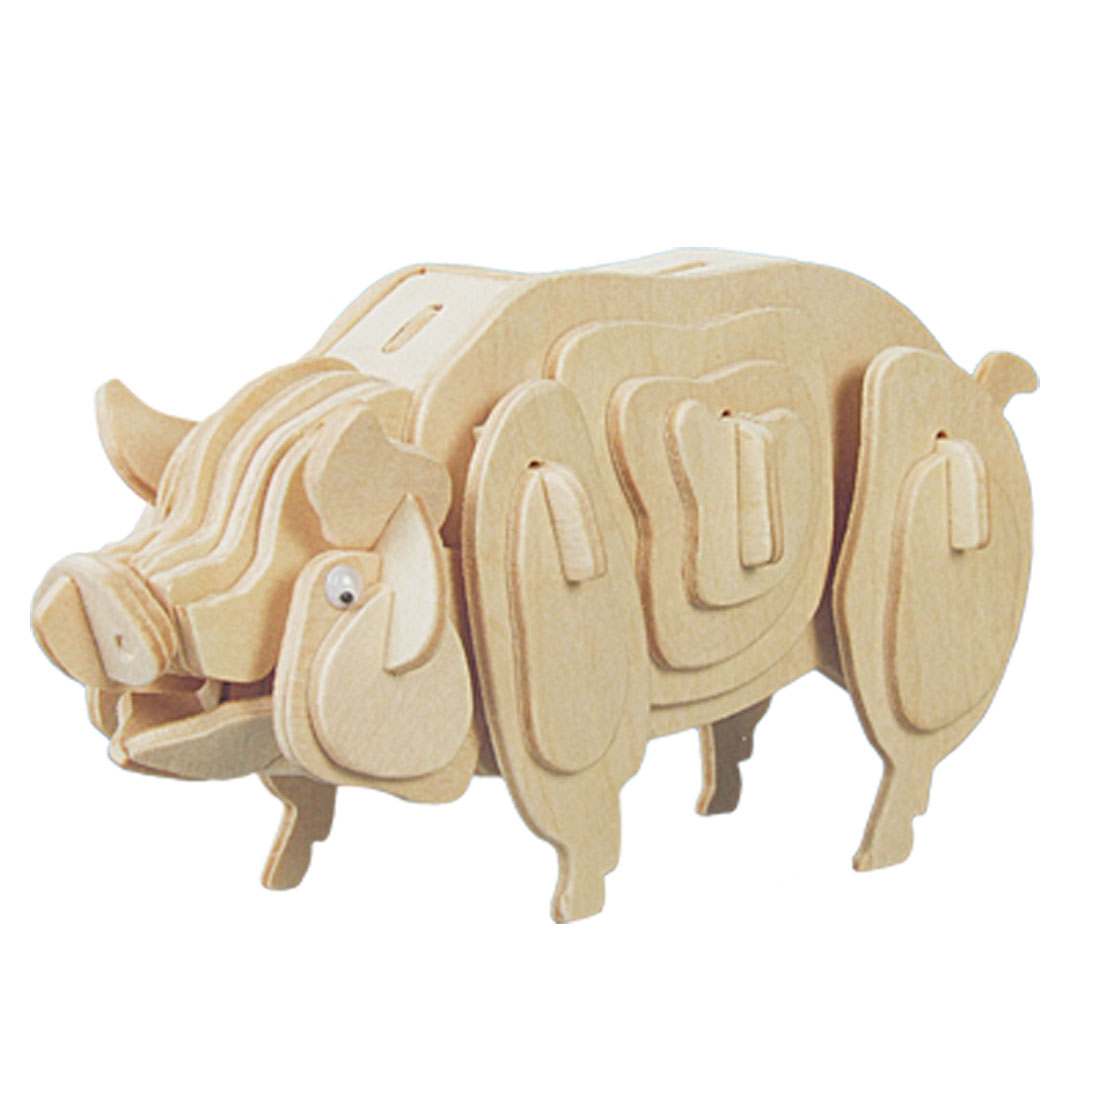 Pig Model Woodcraft Construction Kit Wooden Puzzle Toy